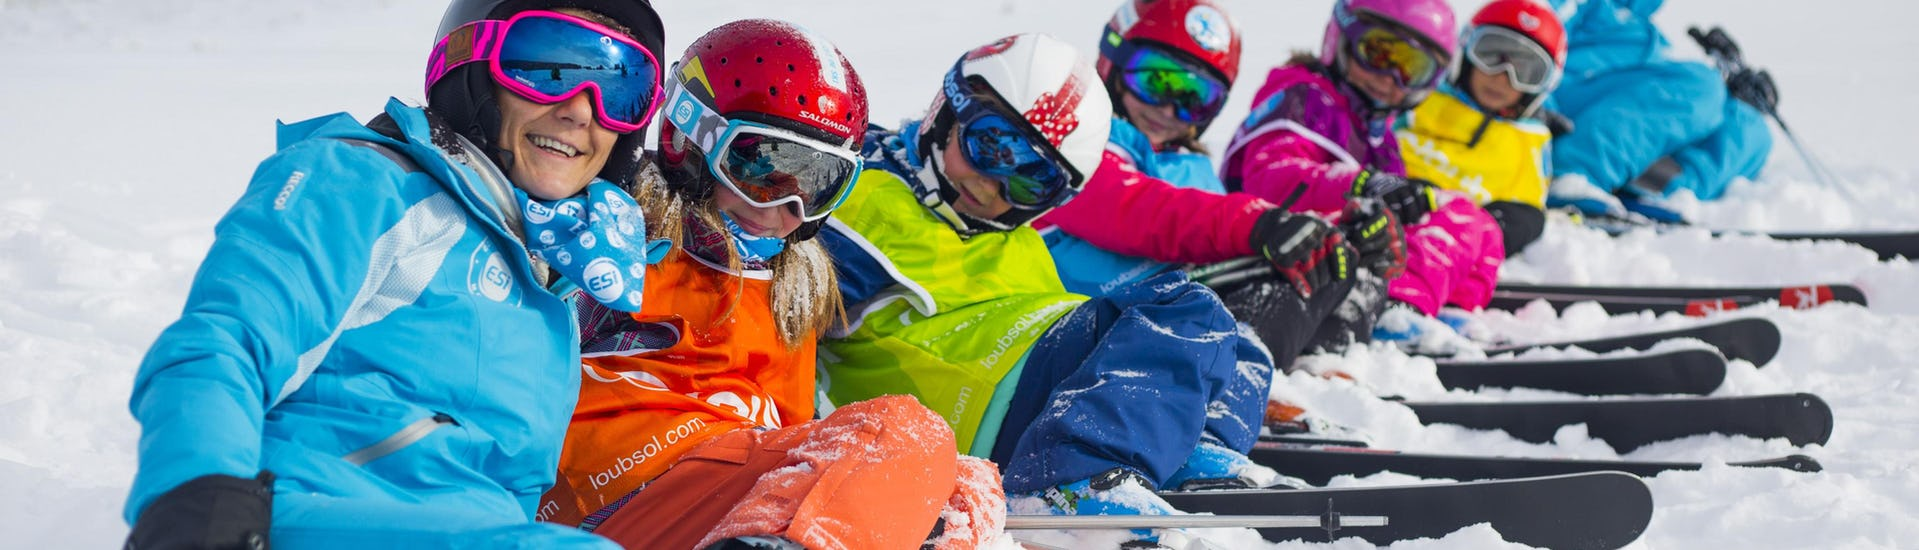 Ski Lessons for Teens & Adults - Low Season - Beginner